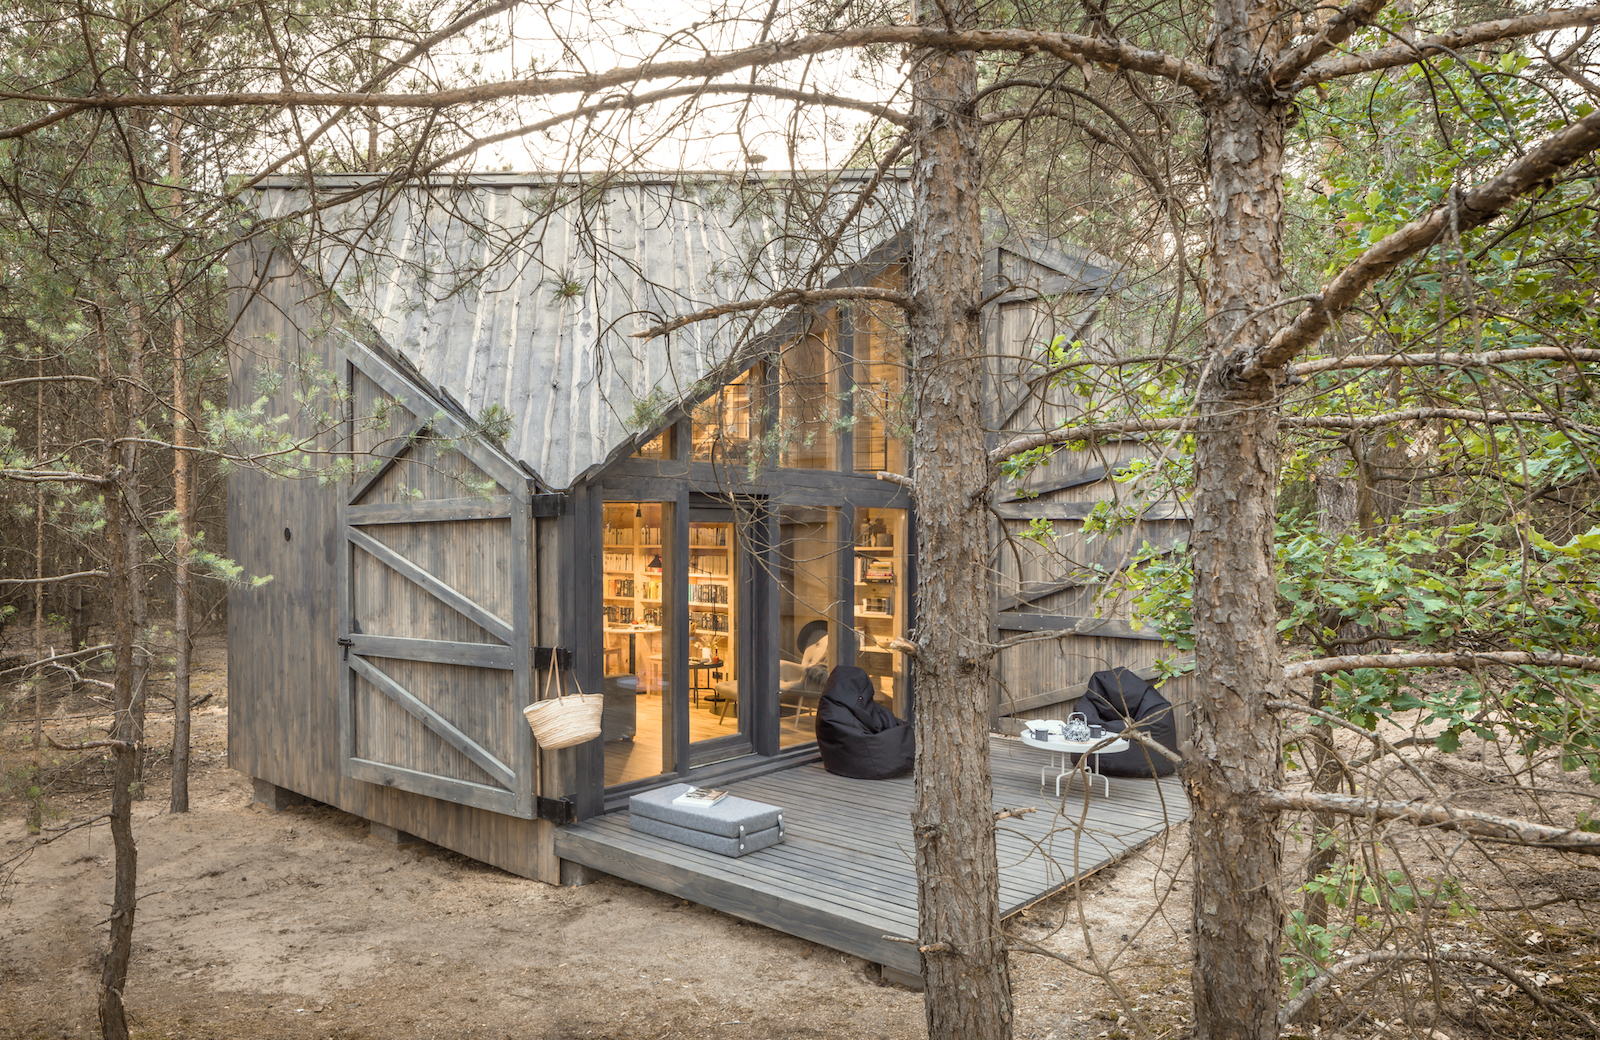 Cozy cabin was custom-designed for reading